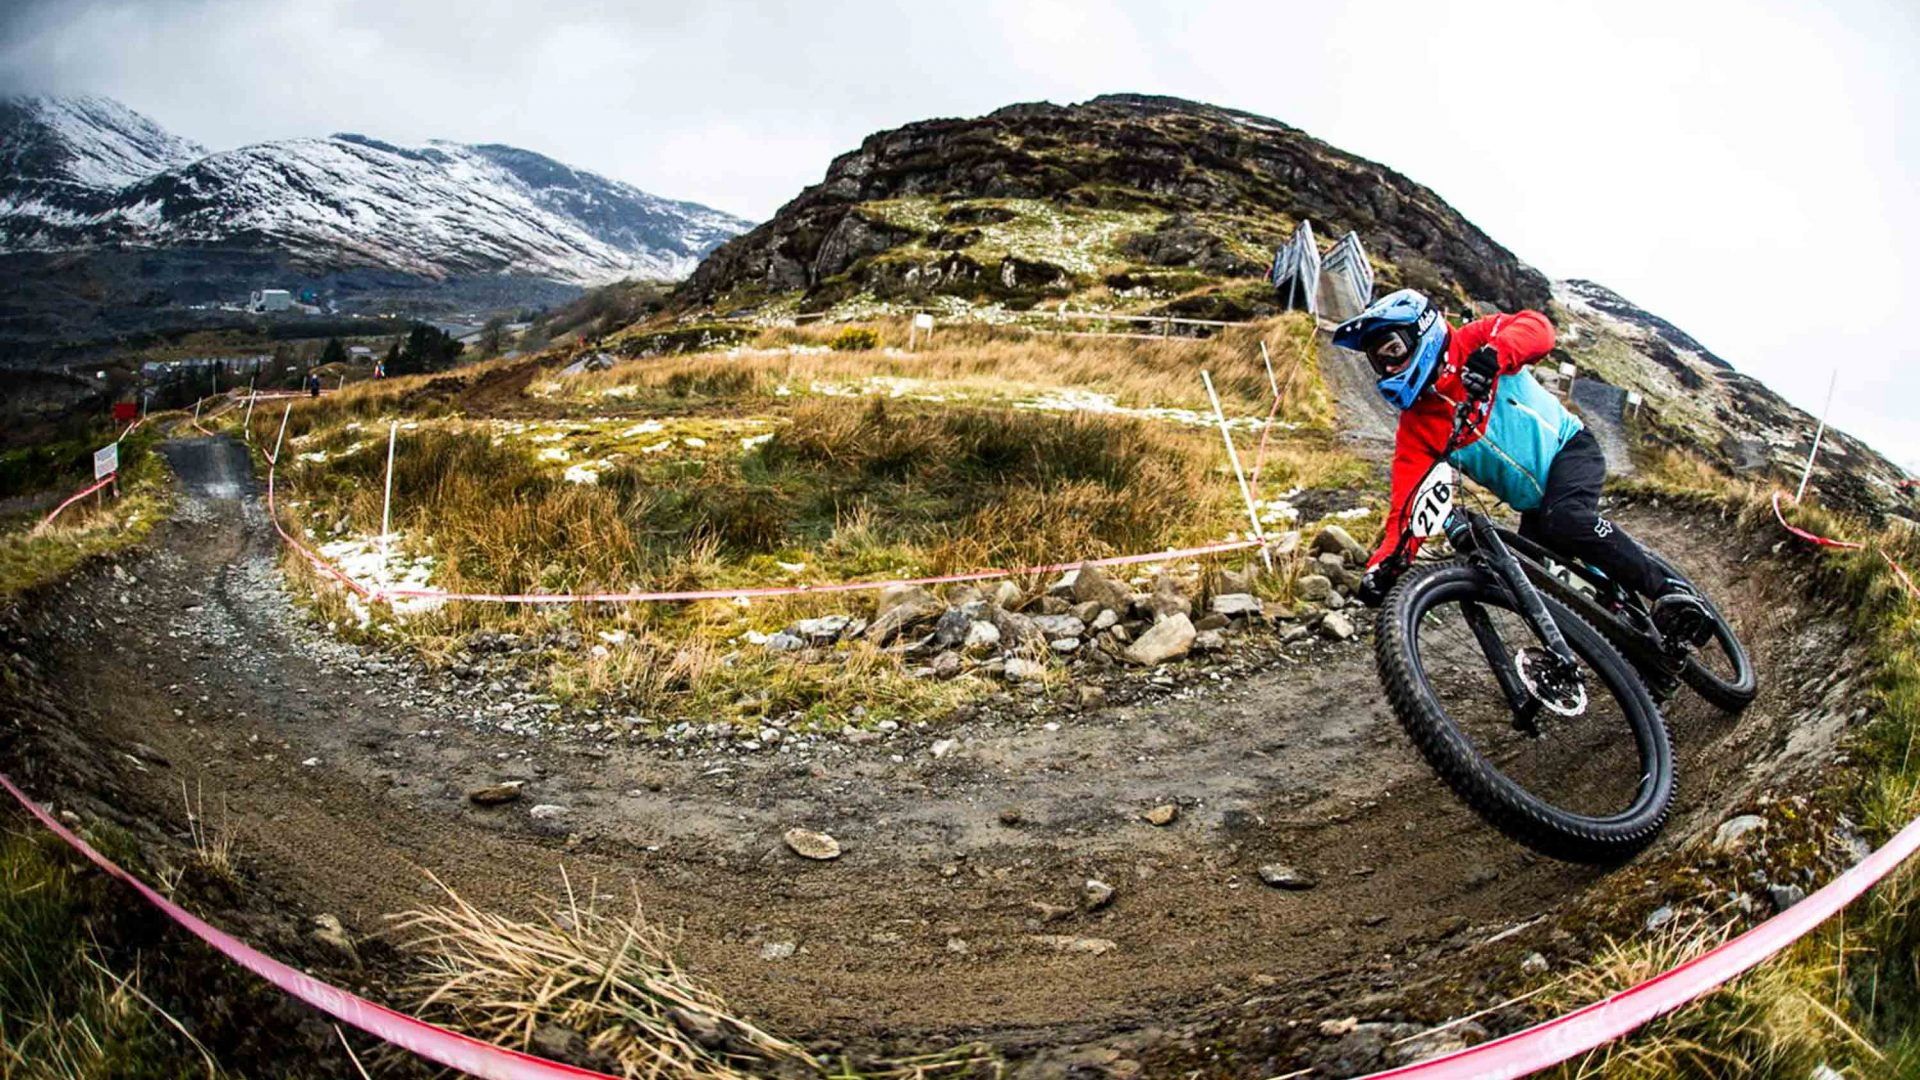 Antur Stiniog's mountain bike trails.